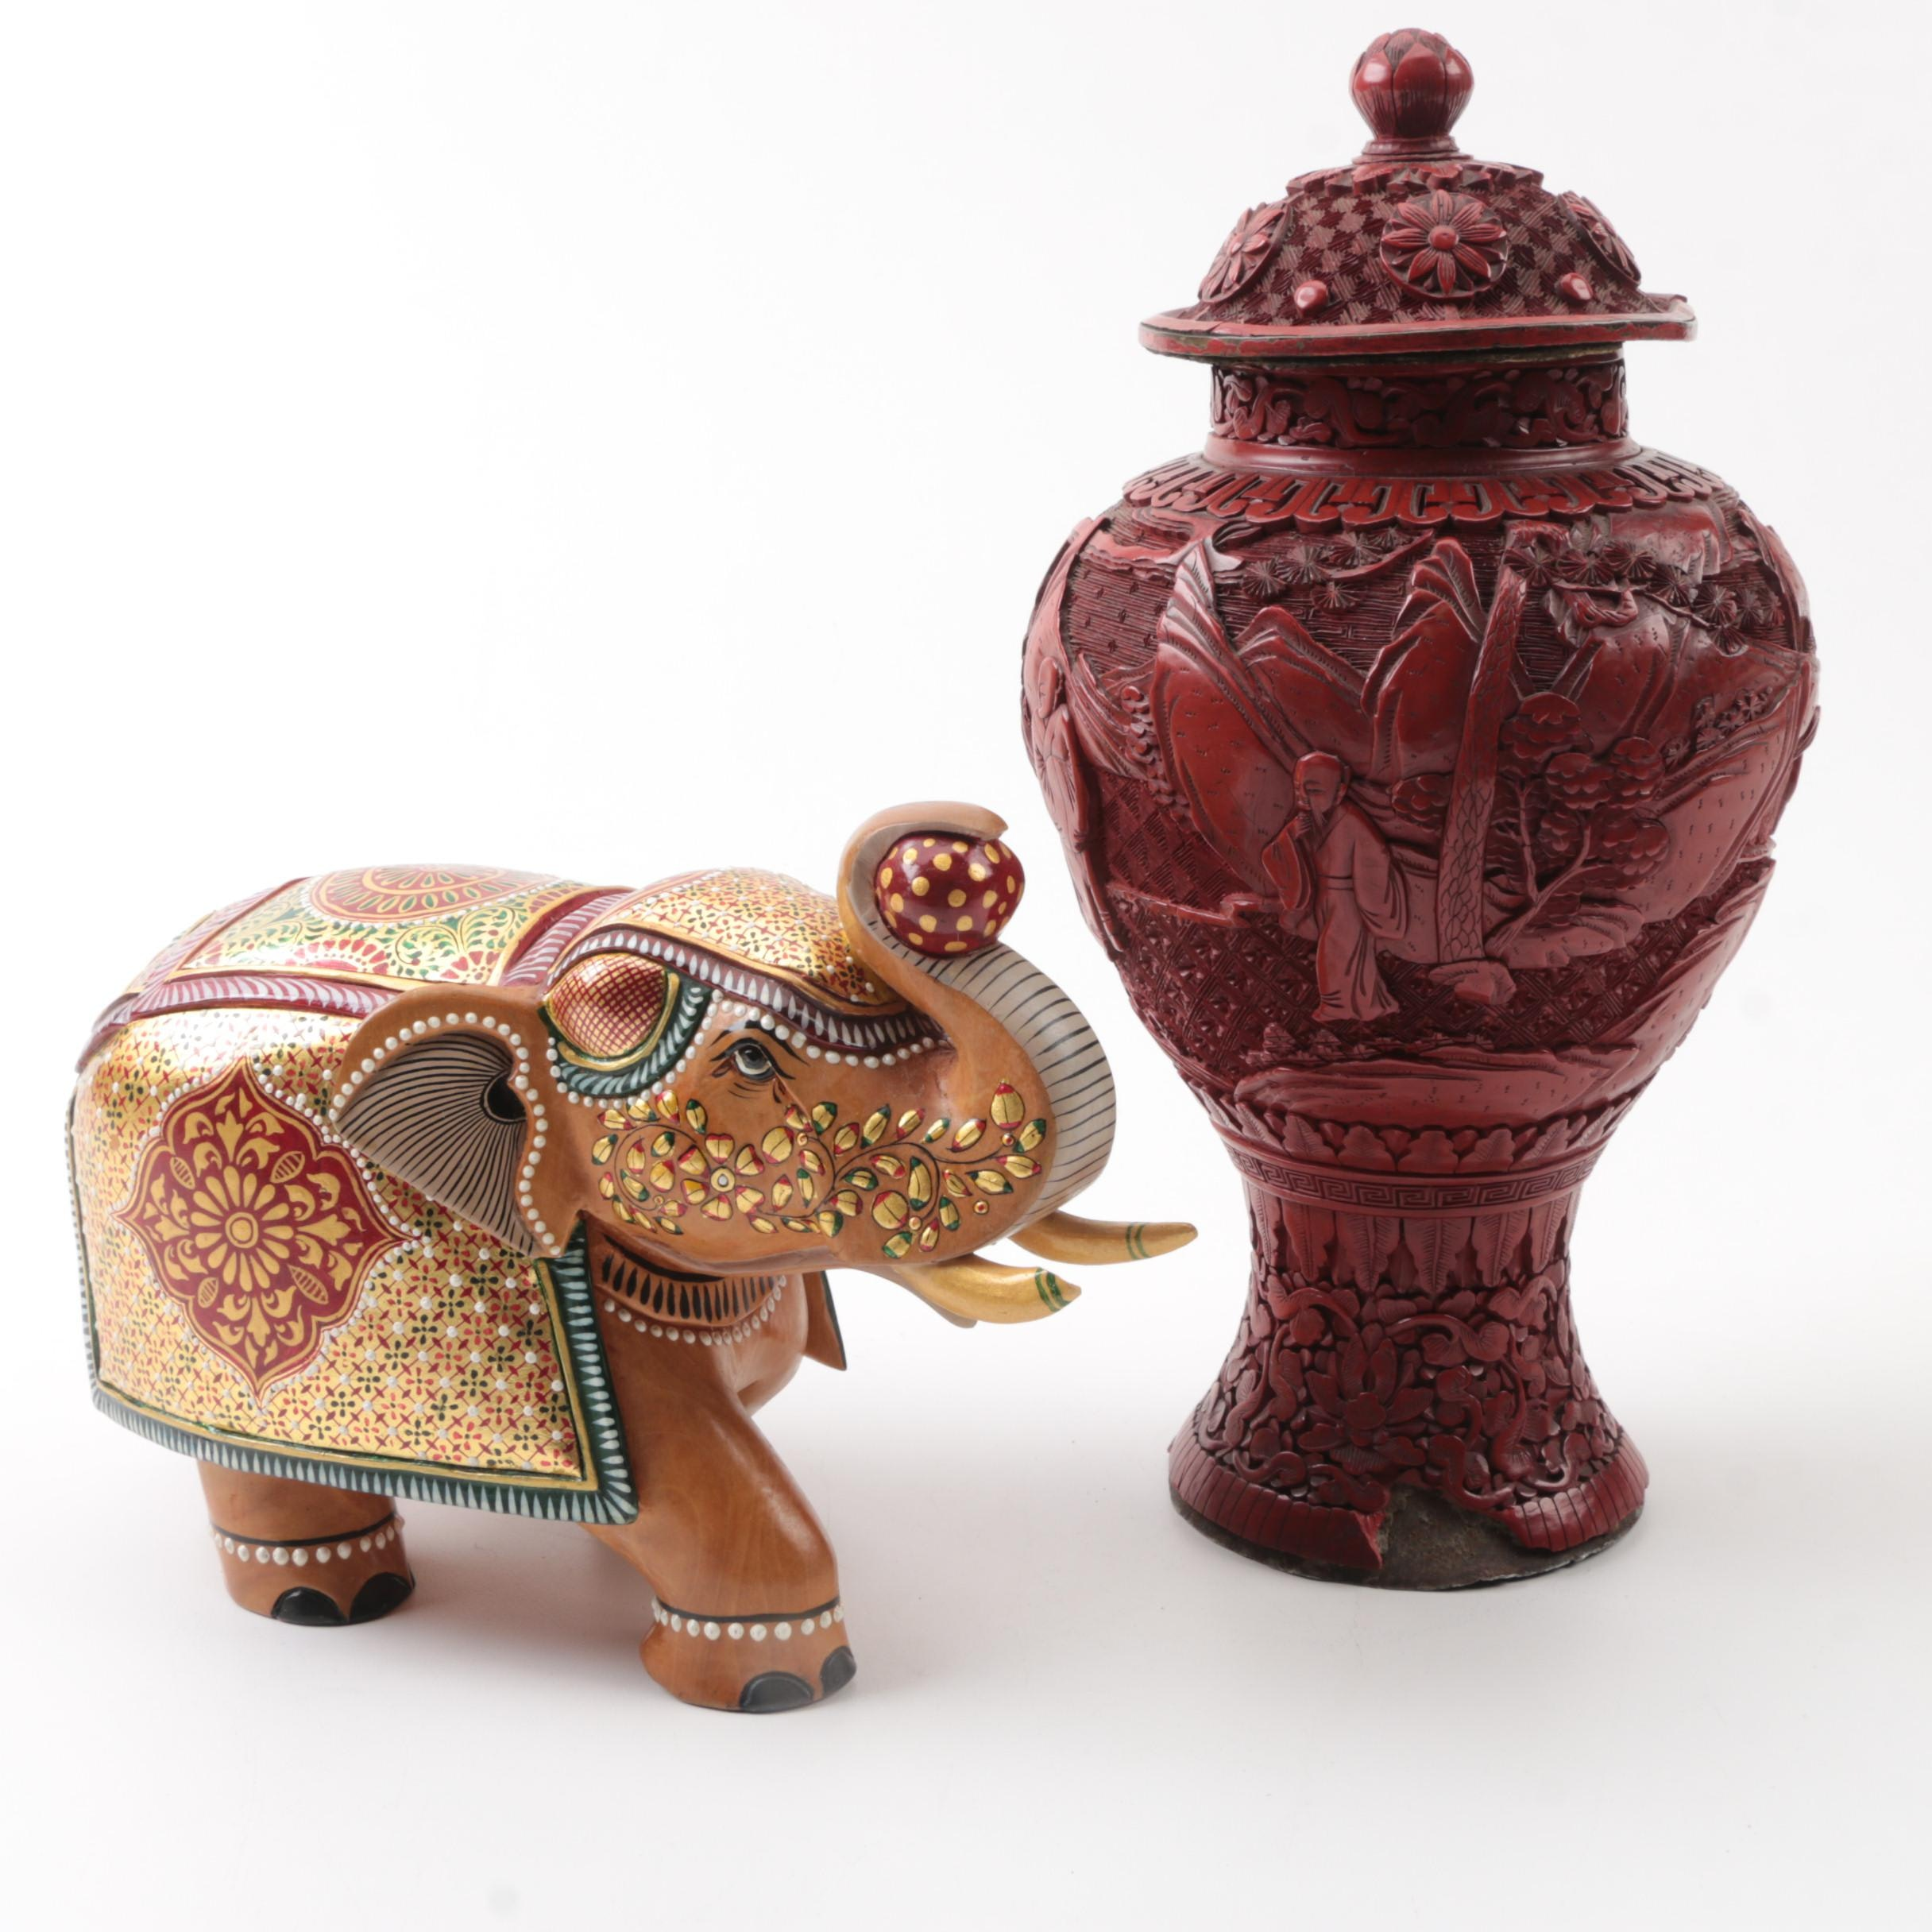 Vintage Chinese Carved Cinnabar Vase and Wooden Elephant